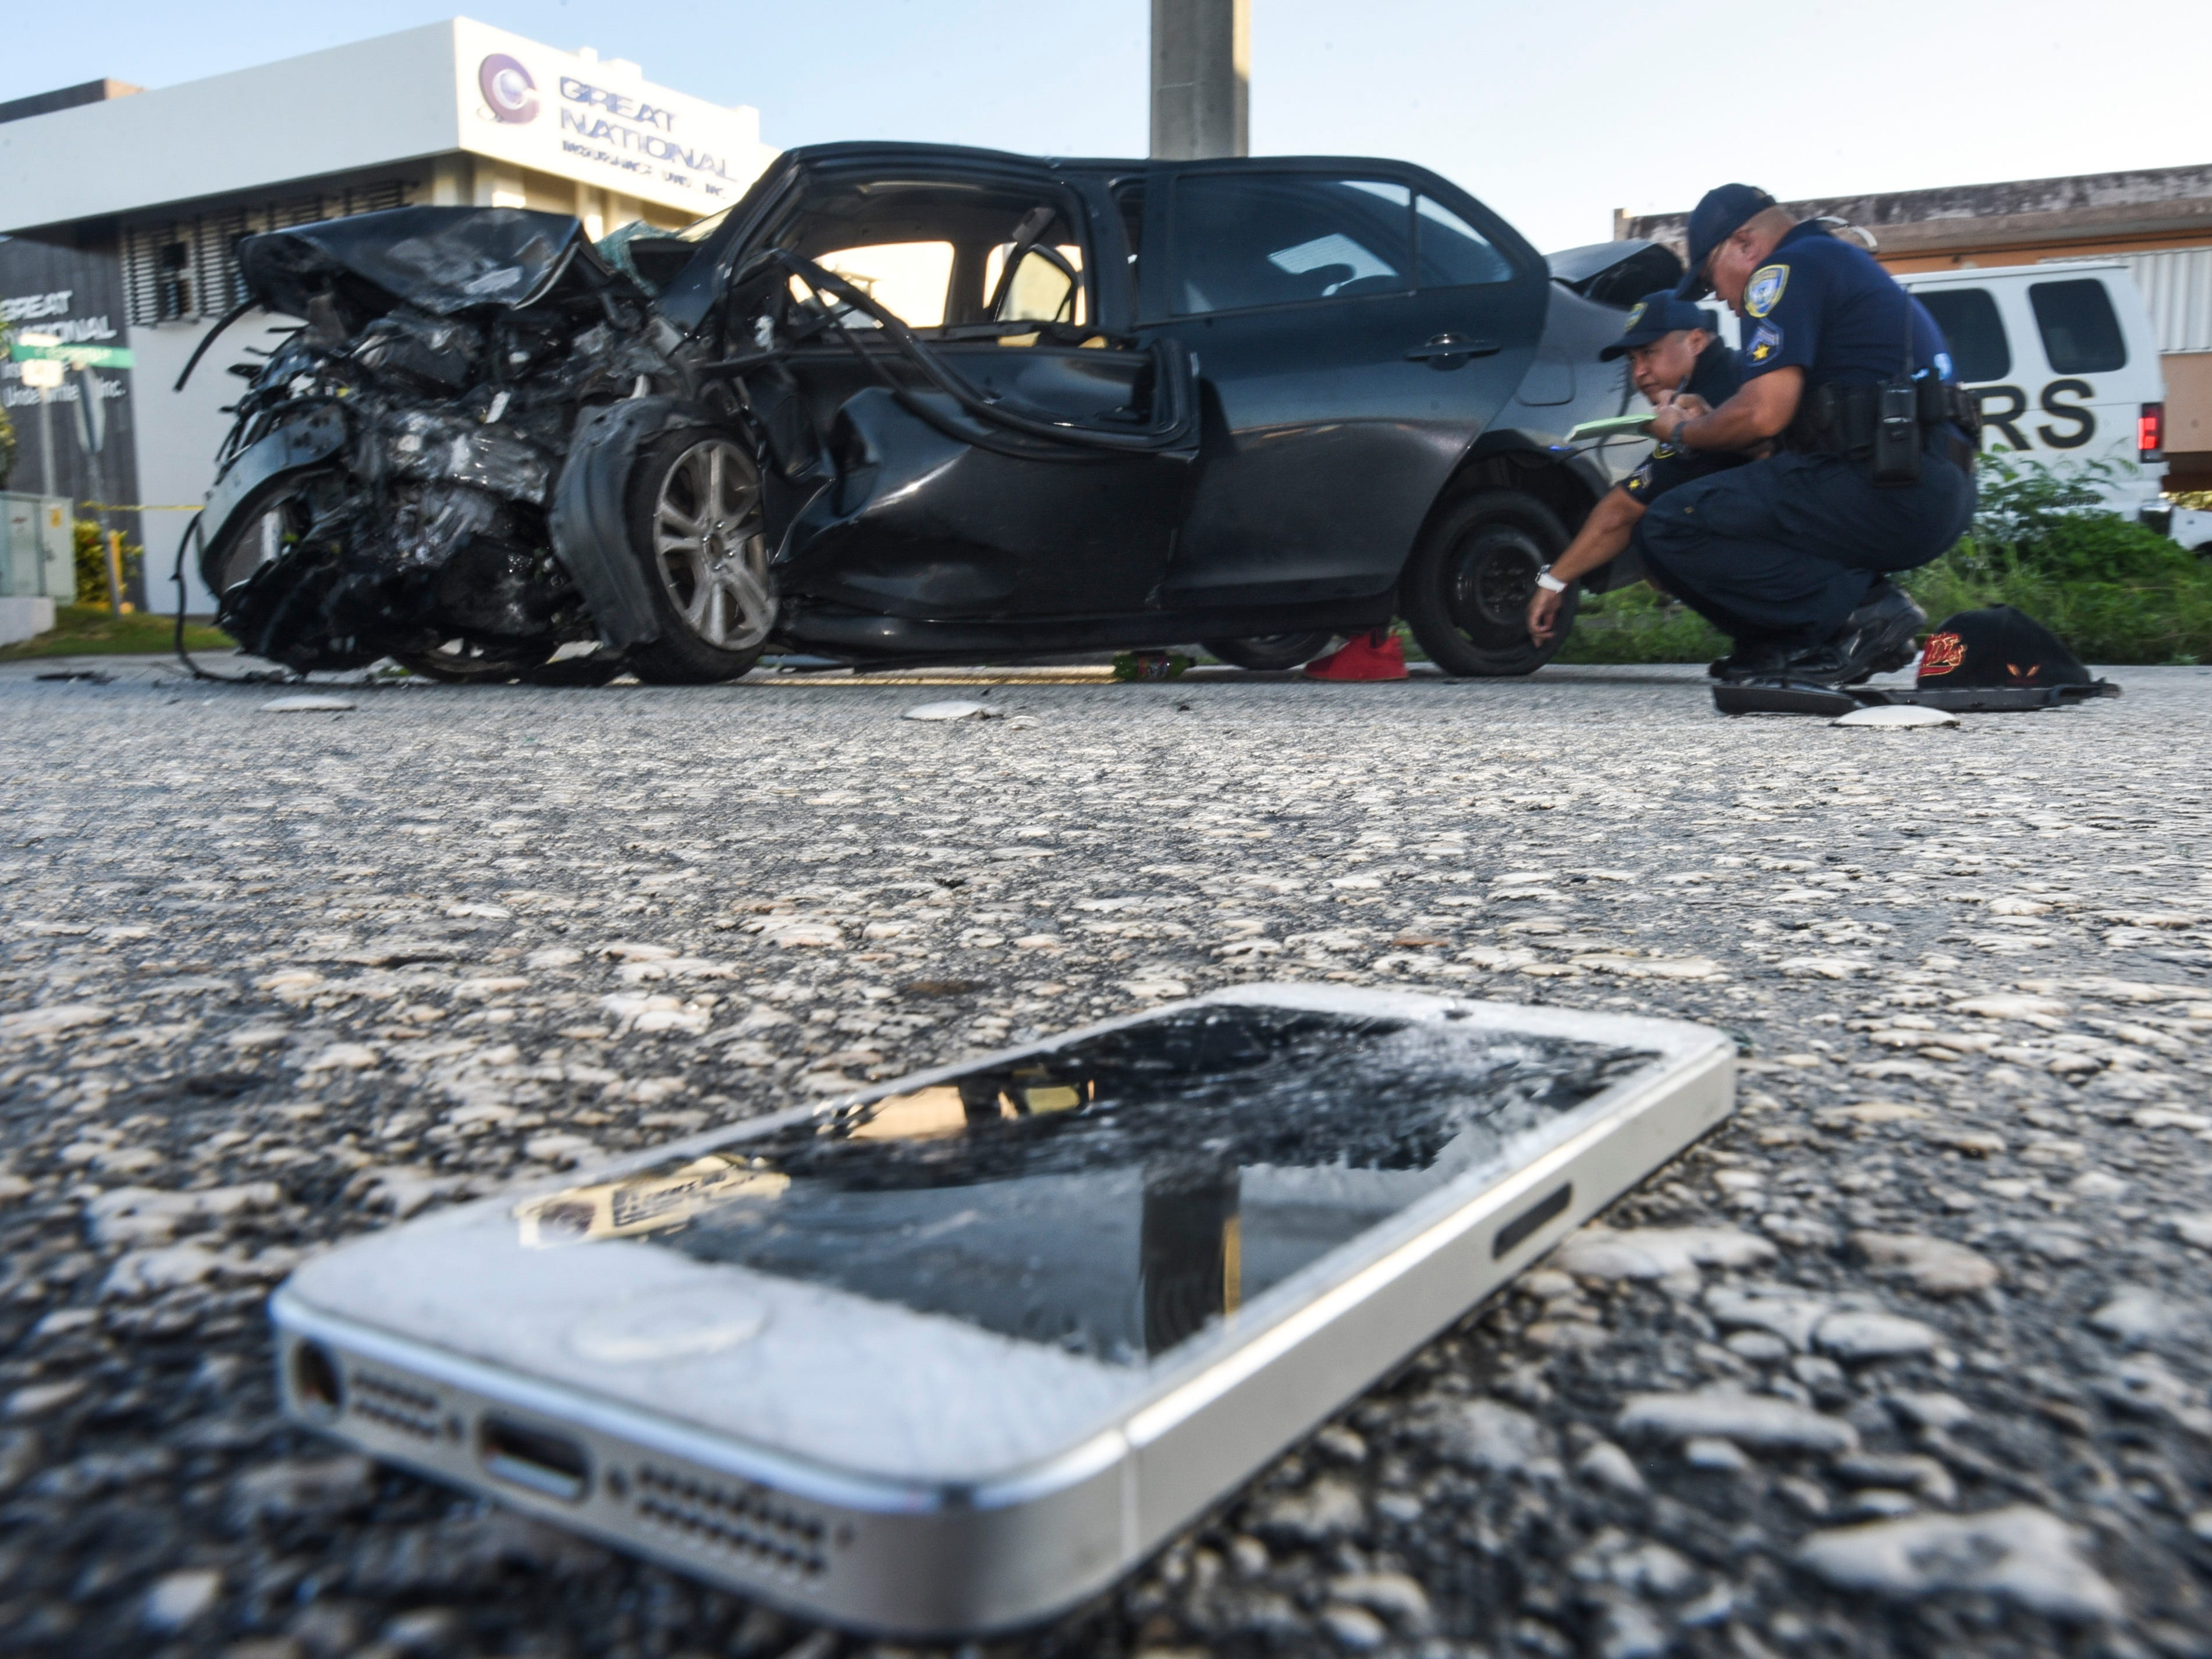 A shattered mobile phone lays on the asphalt at the scene where officers of the Guam Police Department's Highway Patrol Division investigate a fatal auto-off roadway incident, near the JNS Divers shop, on Chalan San Antonio in Tamuning on Wednesday, Dec. 5, 2018. The accident claimed the life of the driver, who was the sole occupant, after the vehicle collided into a concrete utility pole on the side of the roadway. The man's death marks the 22nd fatality and the 20th fatal crash that has occured this year.